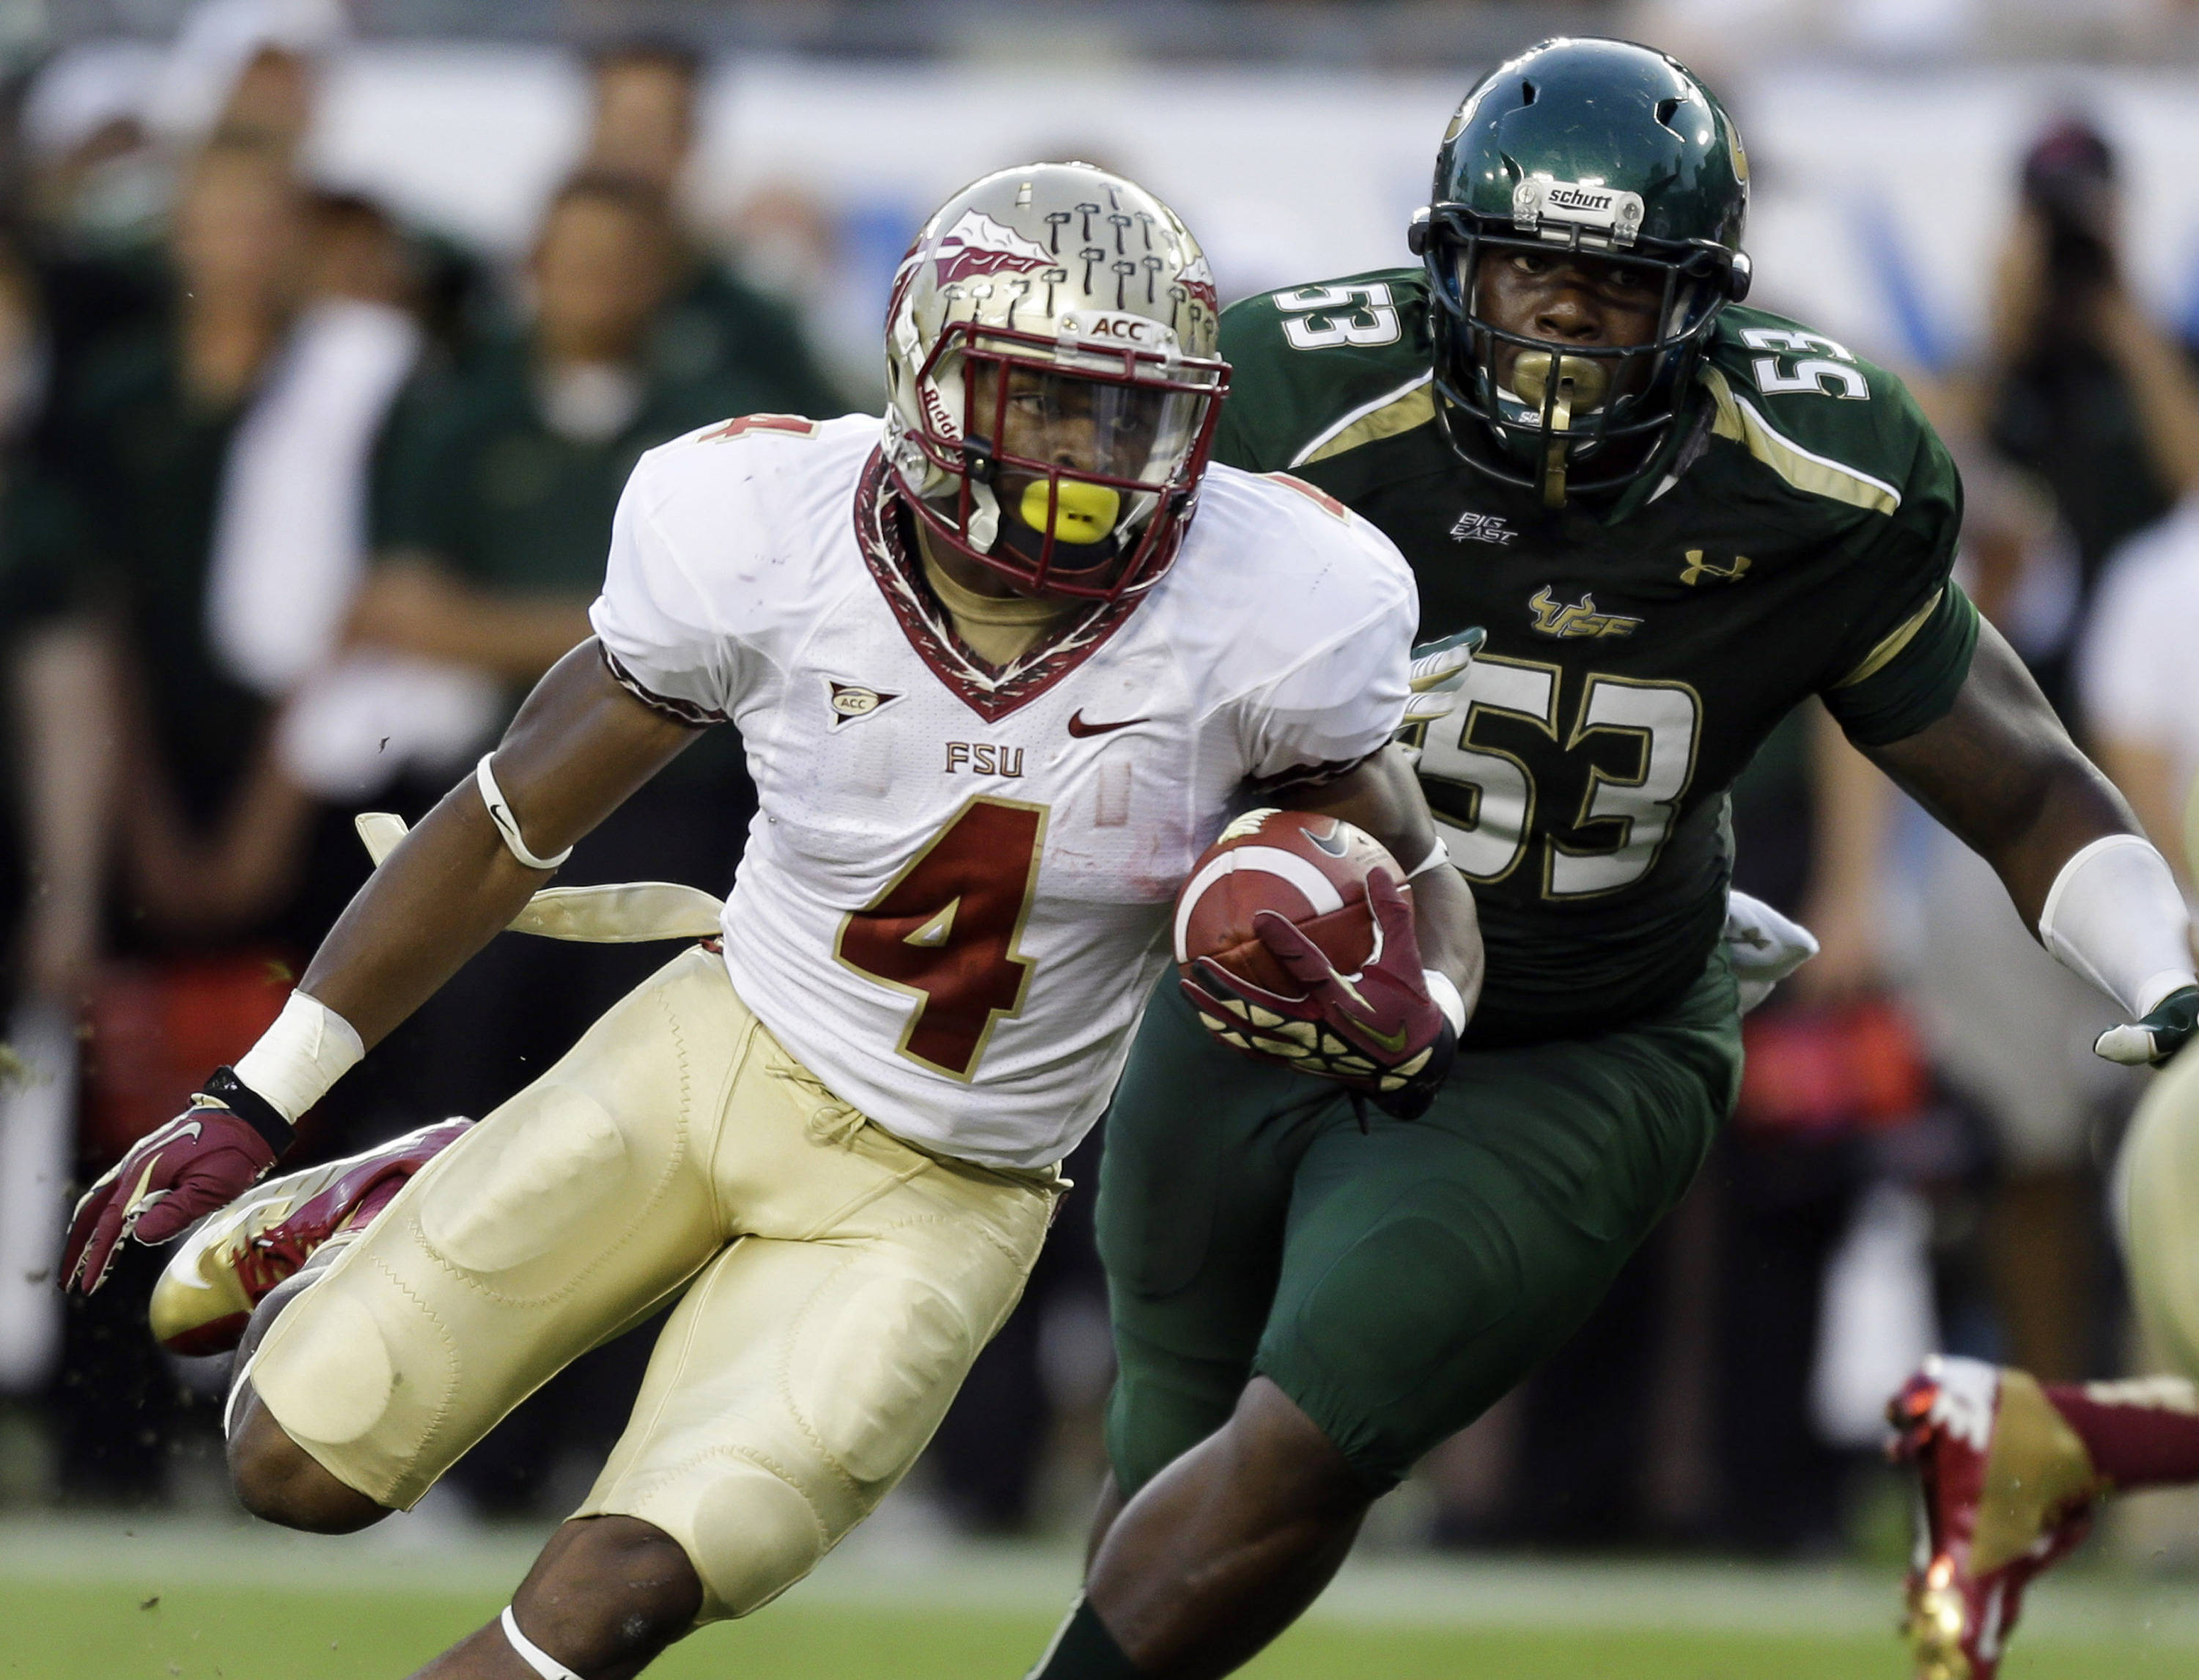 Florida State running back Chris Thompson (4) cuts in front of South Florida defensive lineman Elkino Watson (53) during the second quarter. (AP Photo/Chris O'Meara)